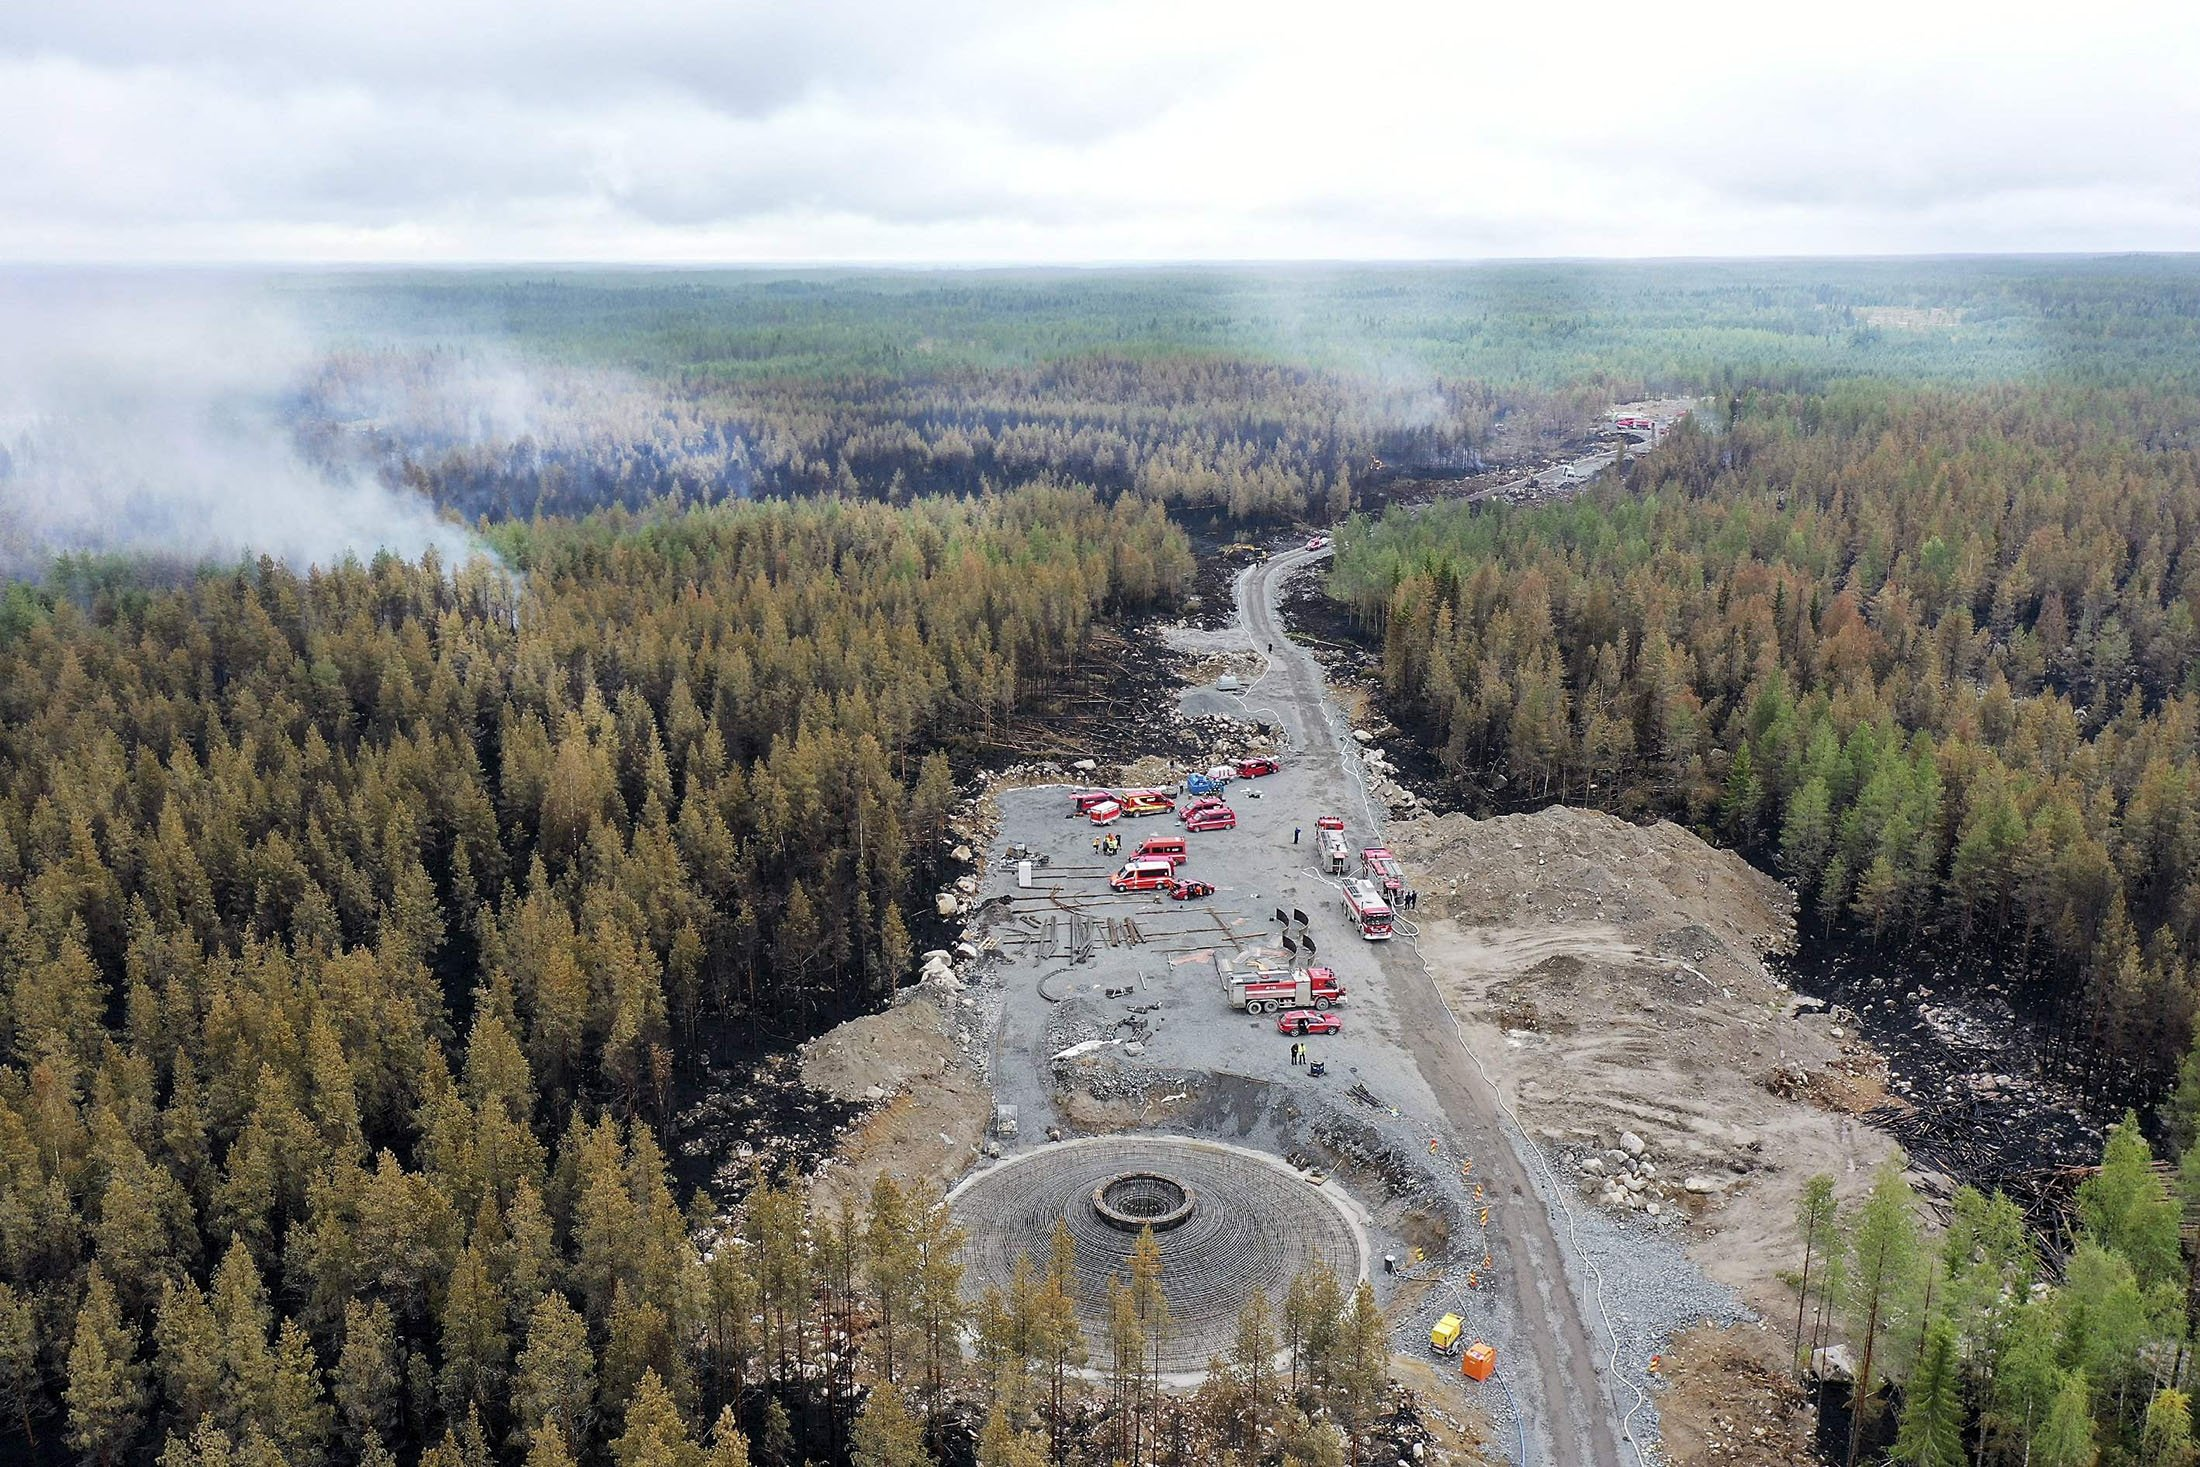 An aerial view shows smoke rising from the burned forest as firefighters and trucks work to extinguish a wildfire in Kalajoki, Northern Ostrobothnia region, north-western Finland, July 31, 2021. (AFP Photo)